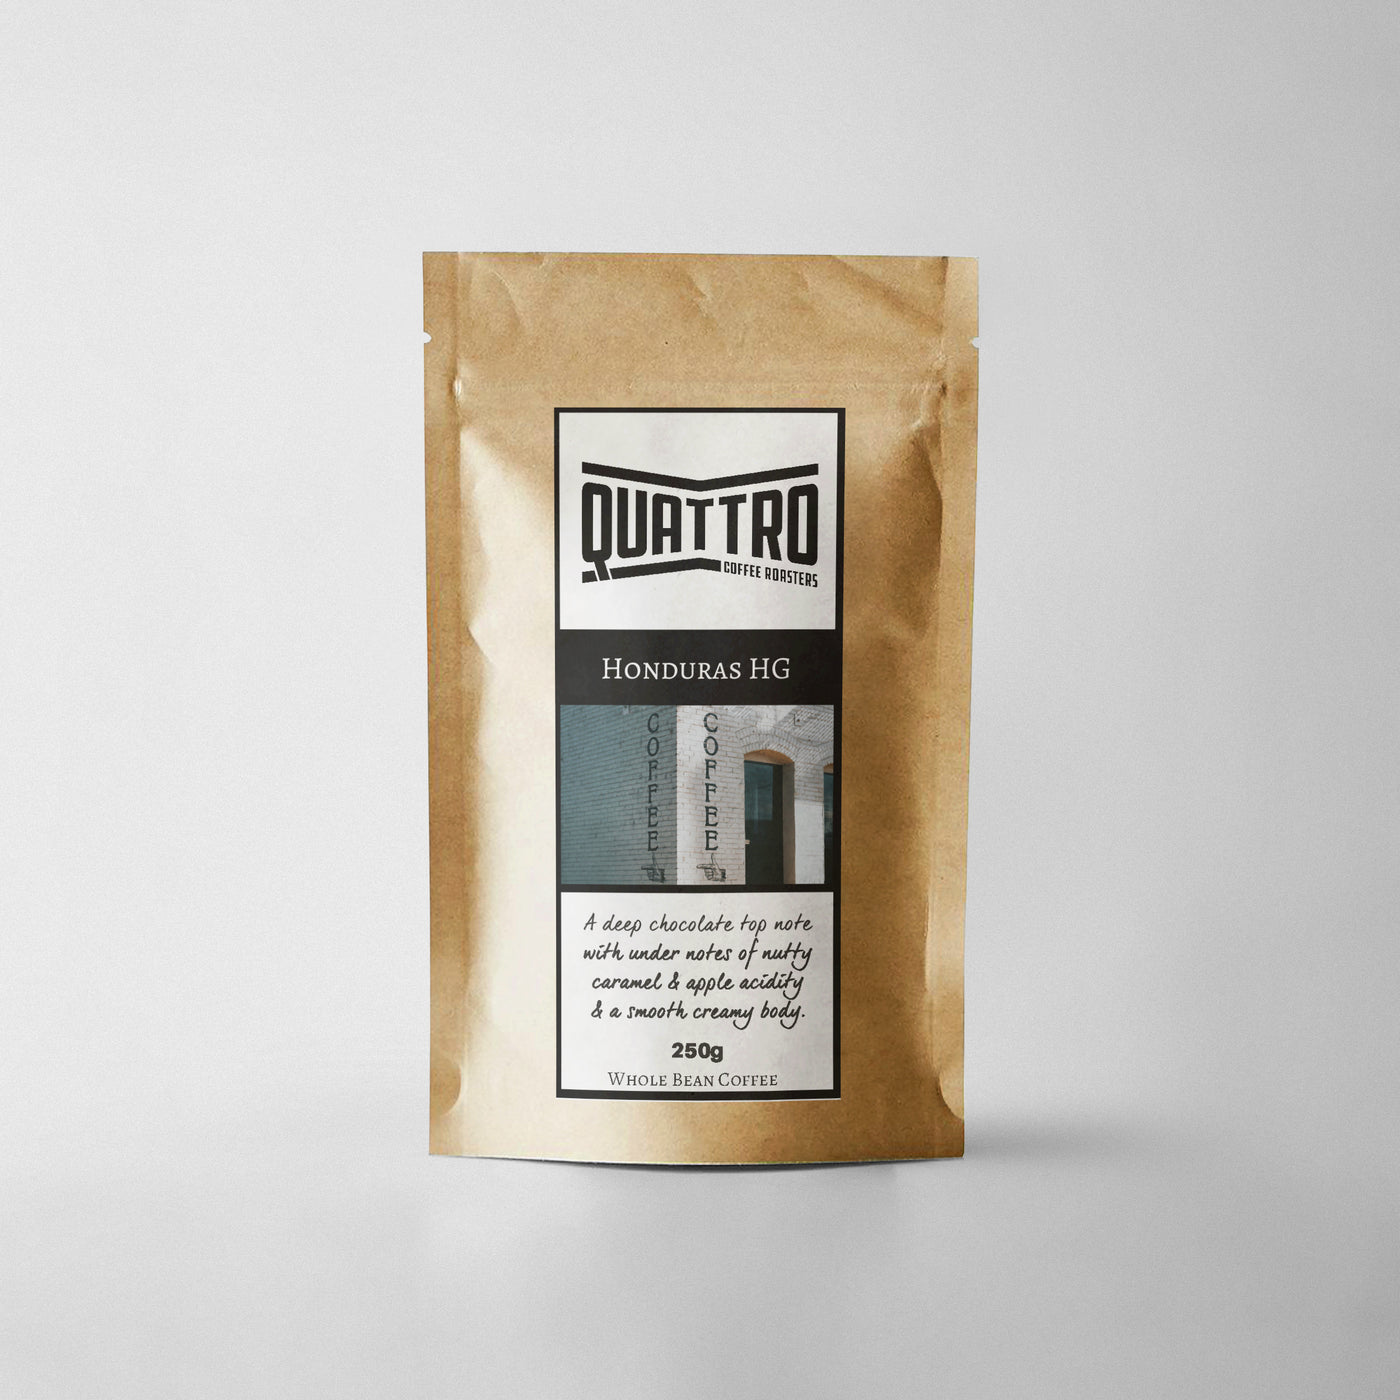 Quattro Single Origin - Honduras - 250g